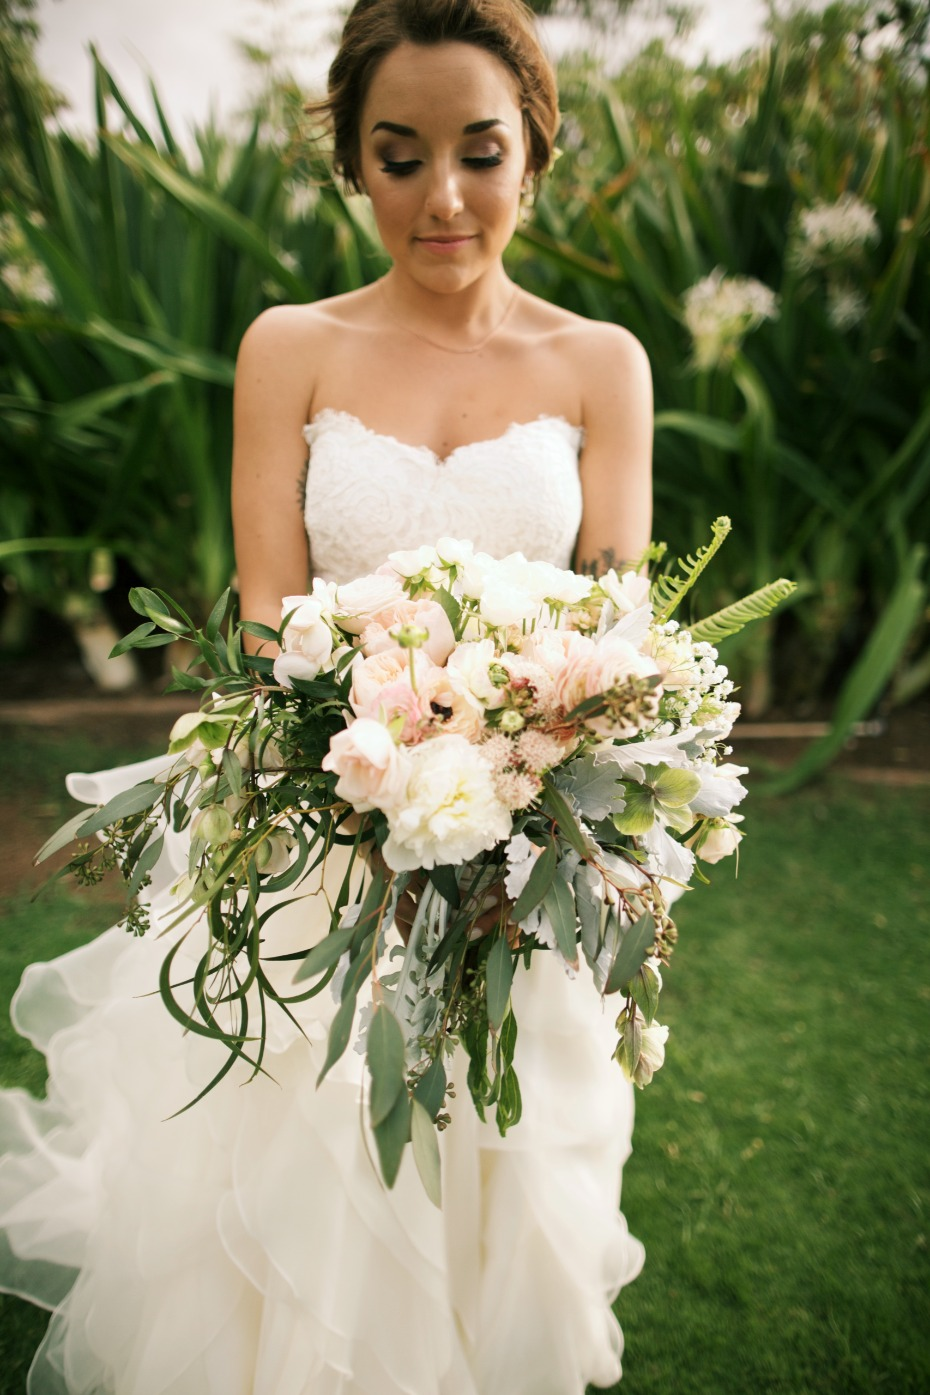 White and blush bouquet with loose greenery